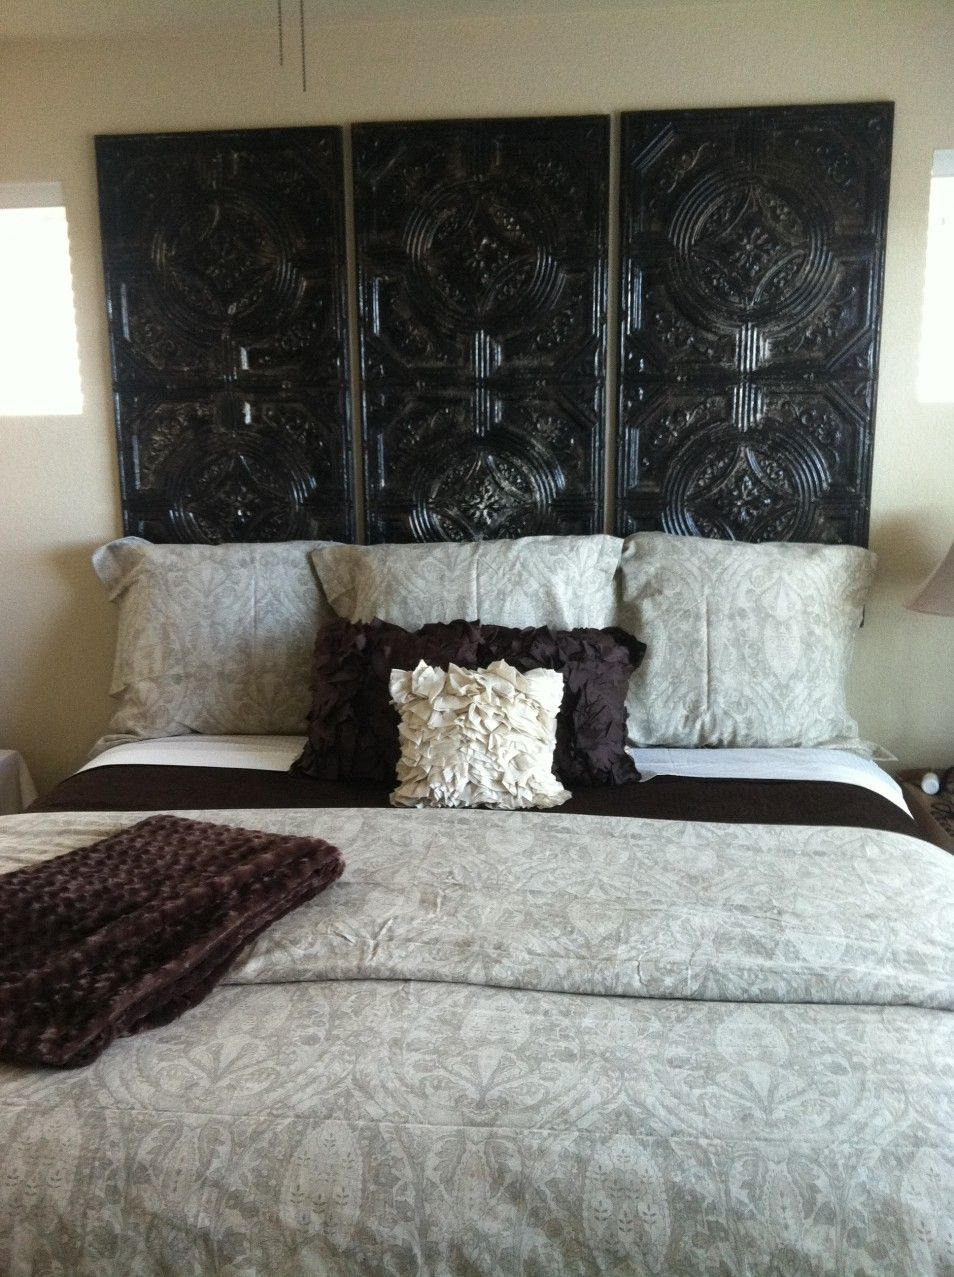 Elegant house interior design with beauty cheap headboard ideas diy elegant house interior design with beauty cheap headboard ideas diy tile headboards on ceiling tiles headboards solutioingenieria Image collections